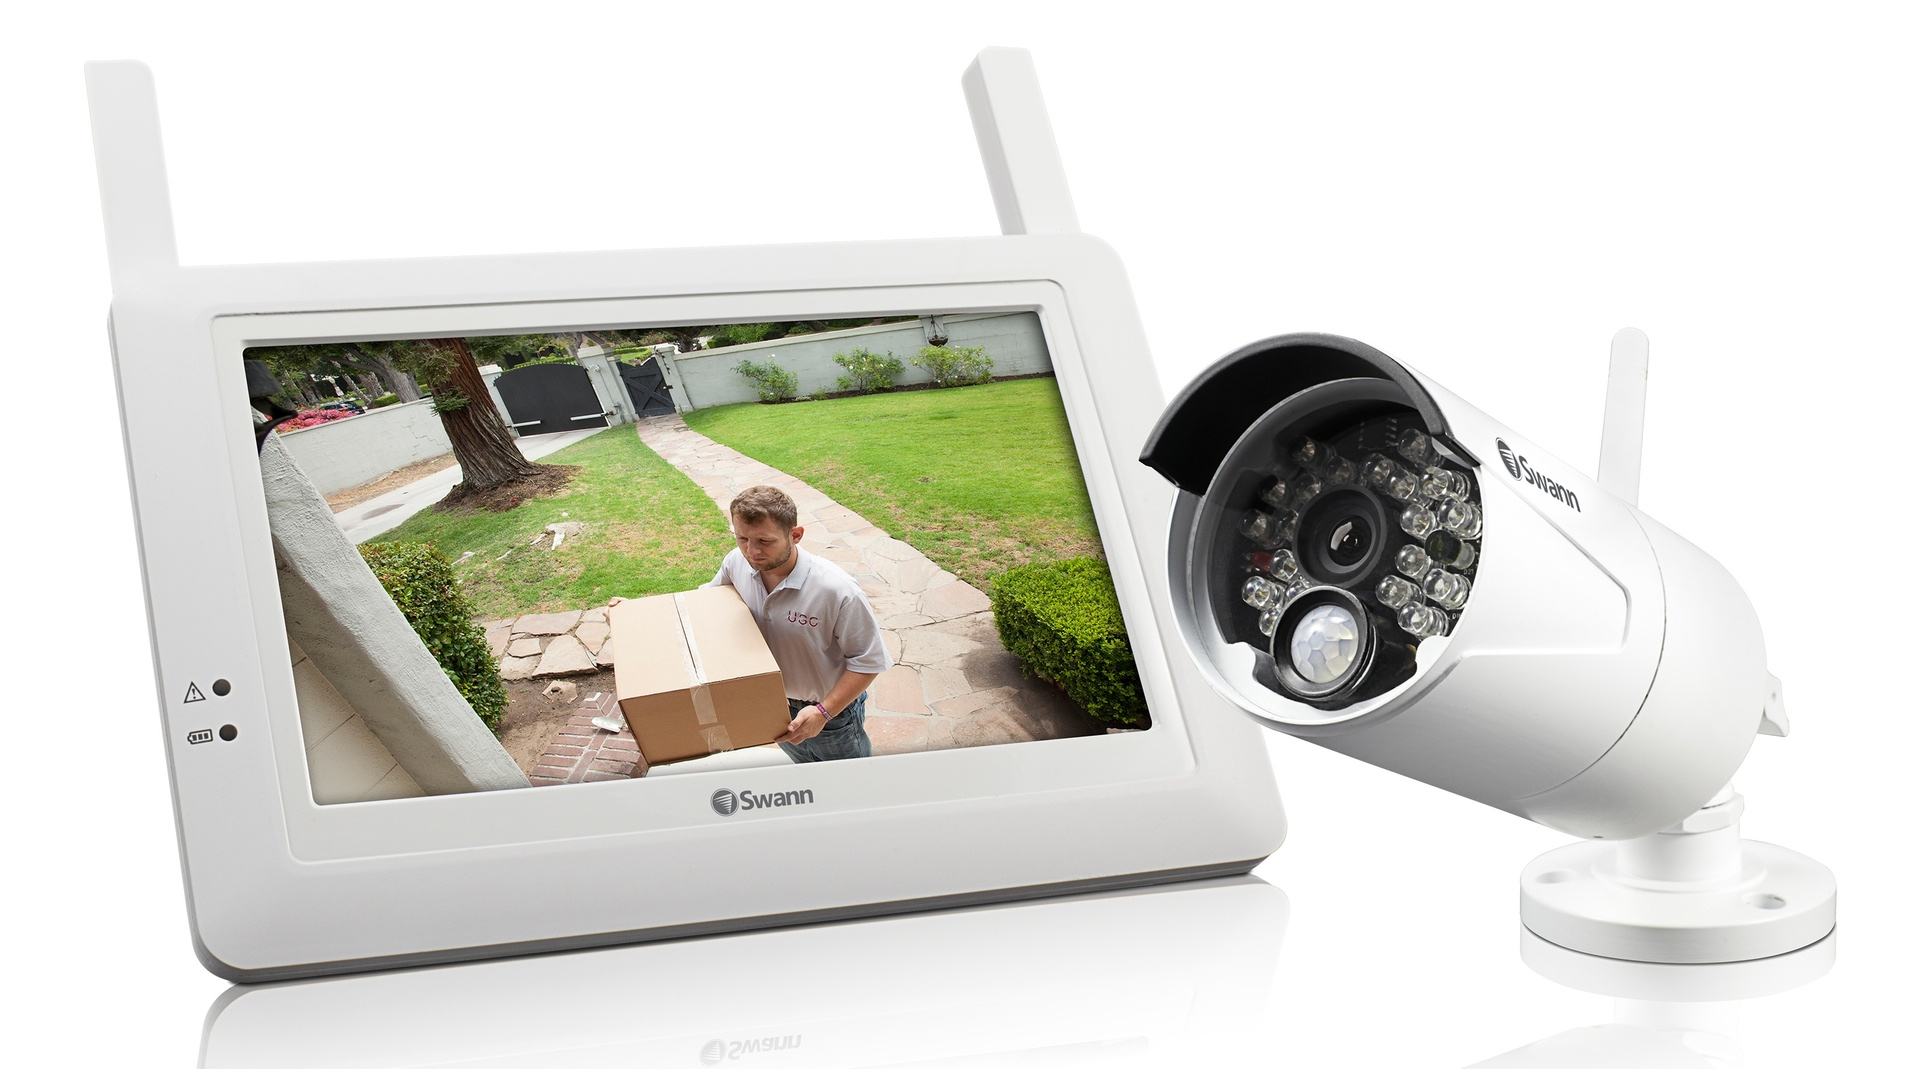 swann-Digital-Wireless-Video-Security-Monitoring-System